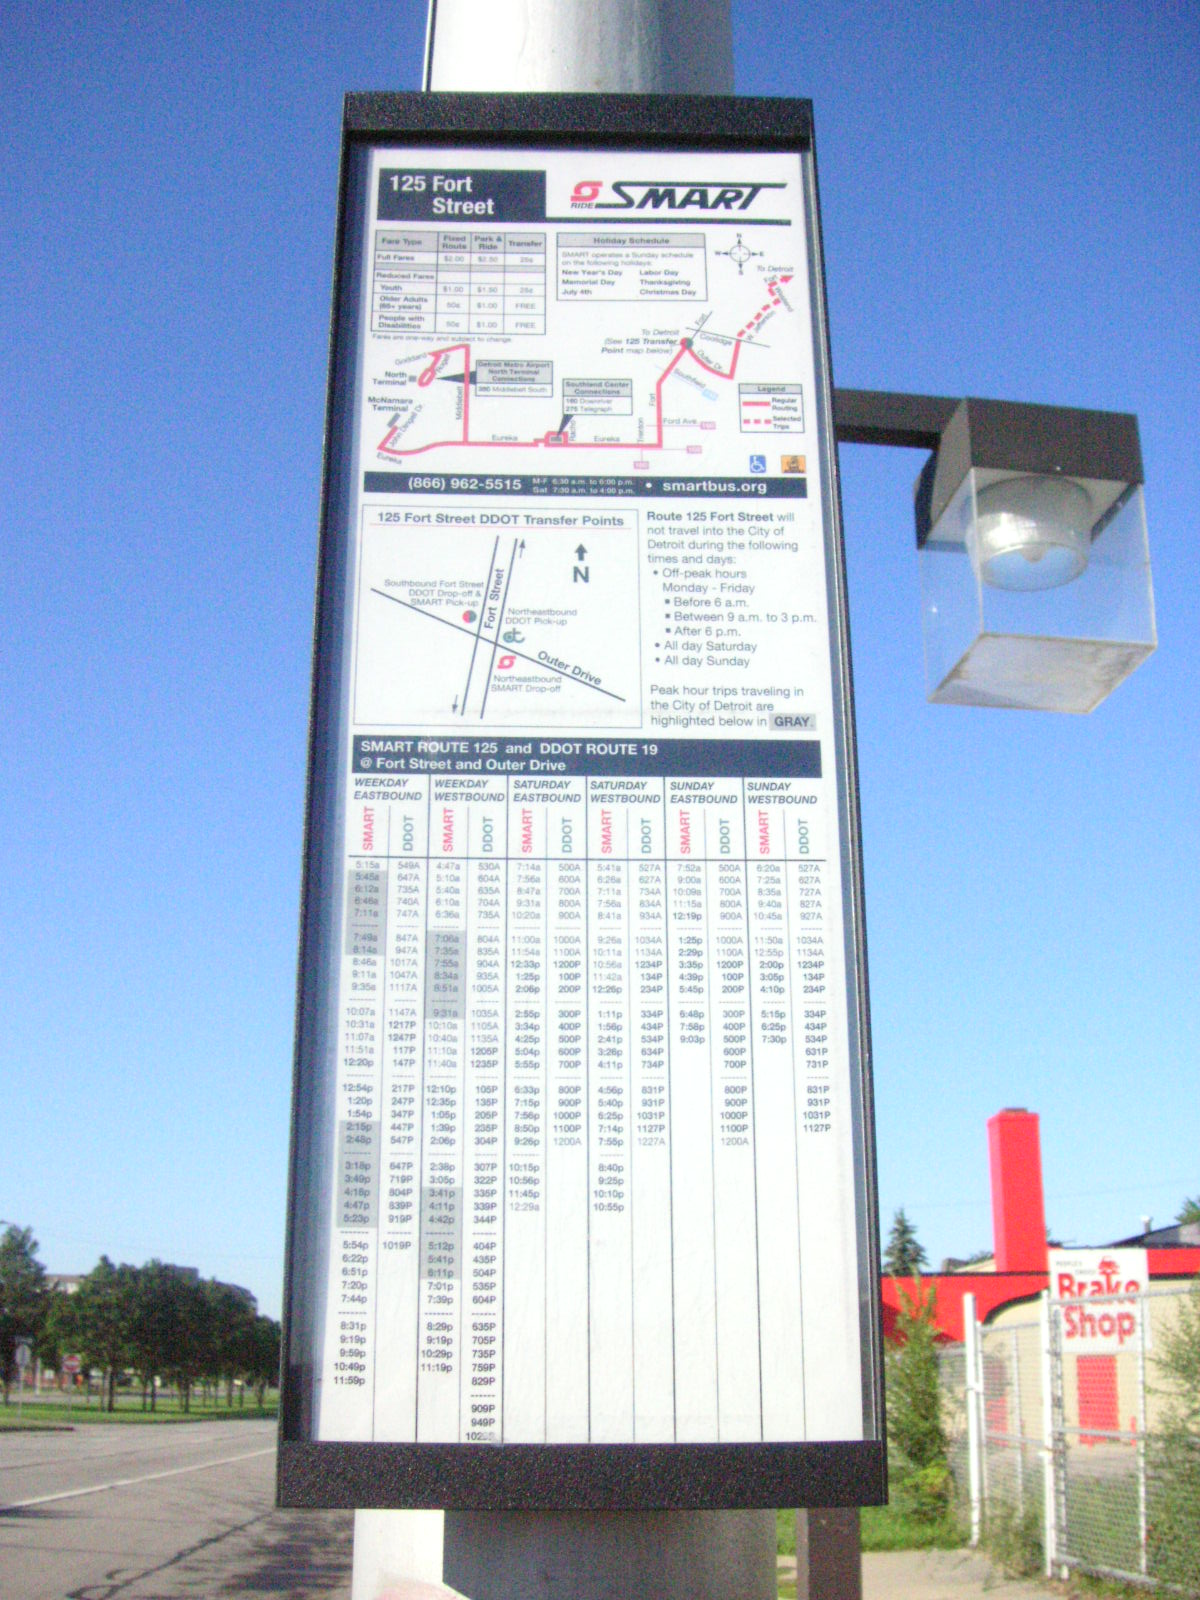 file:bus schedule for route 125 of smart bus - panoramio